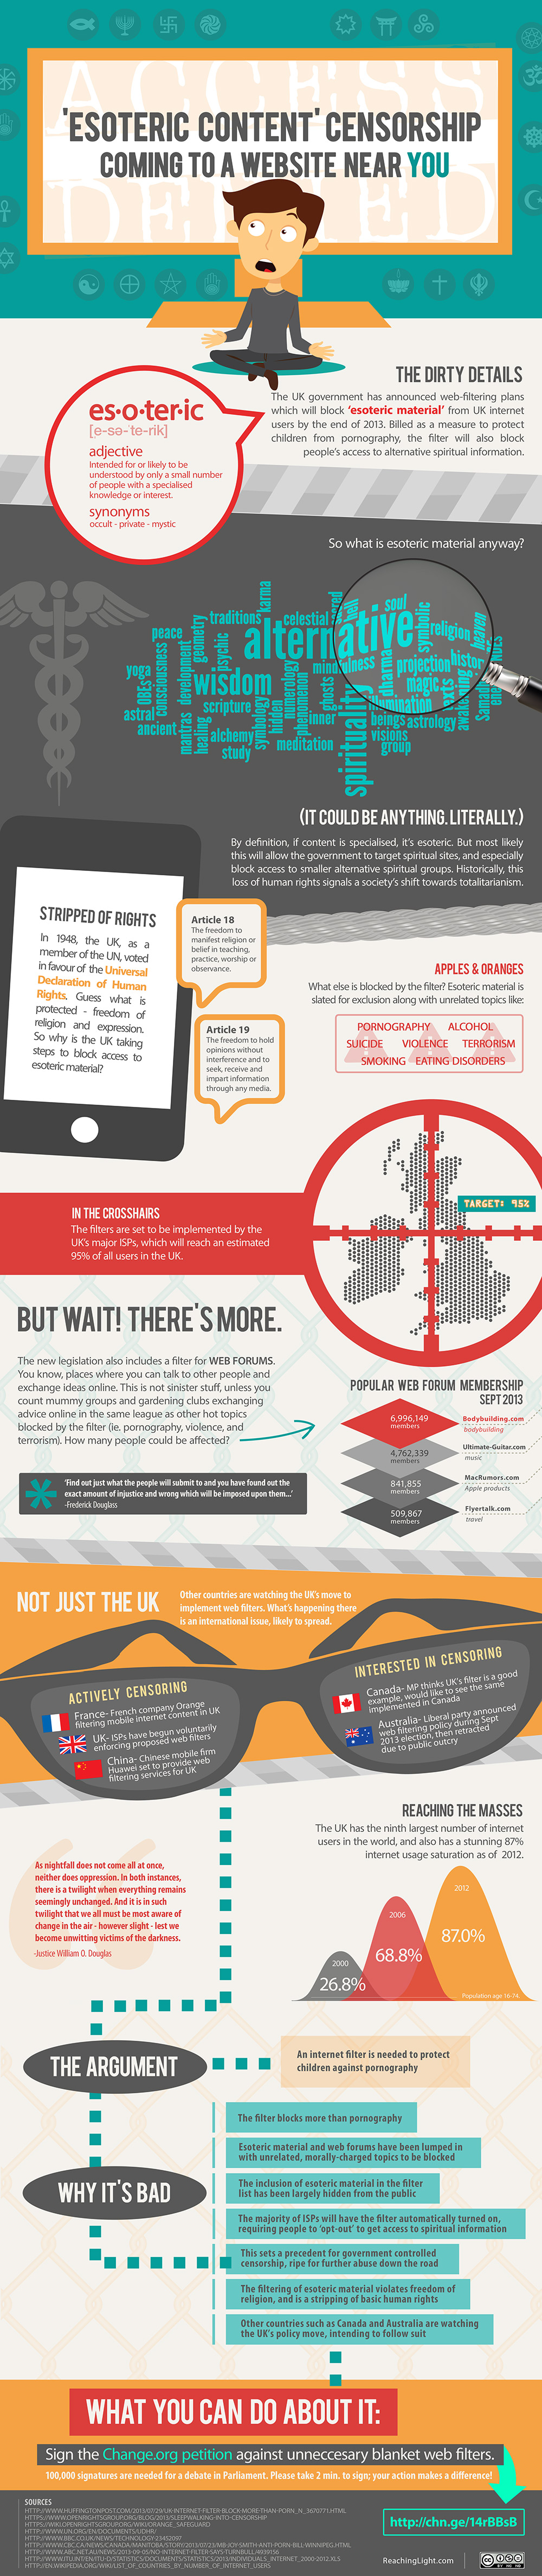 Infographic: UK Filter to Block 'Esoteric Content' - Worldwide Implications